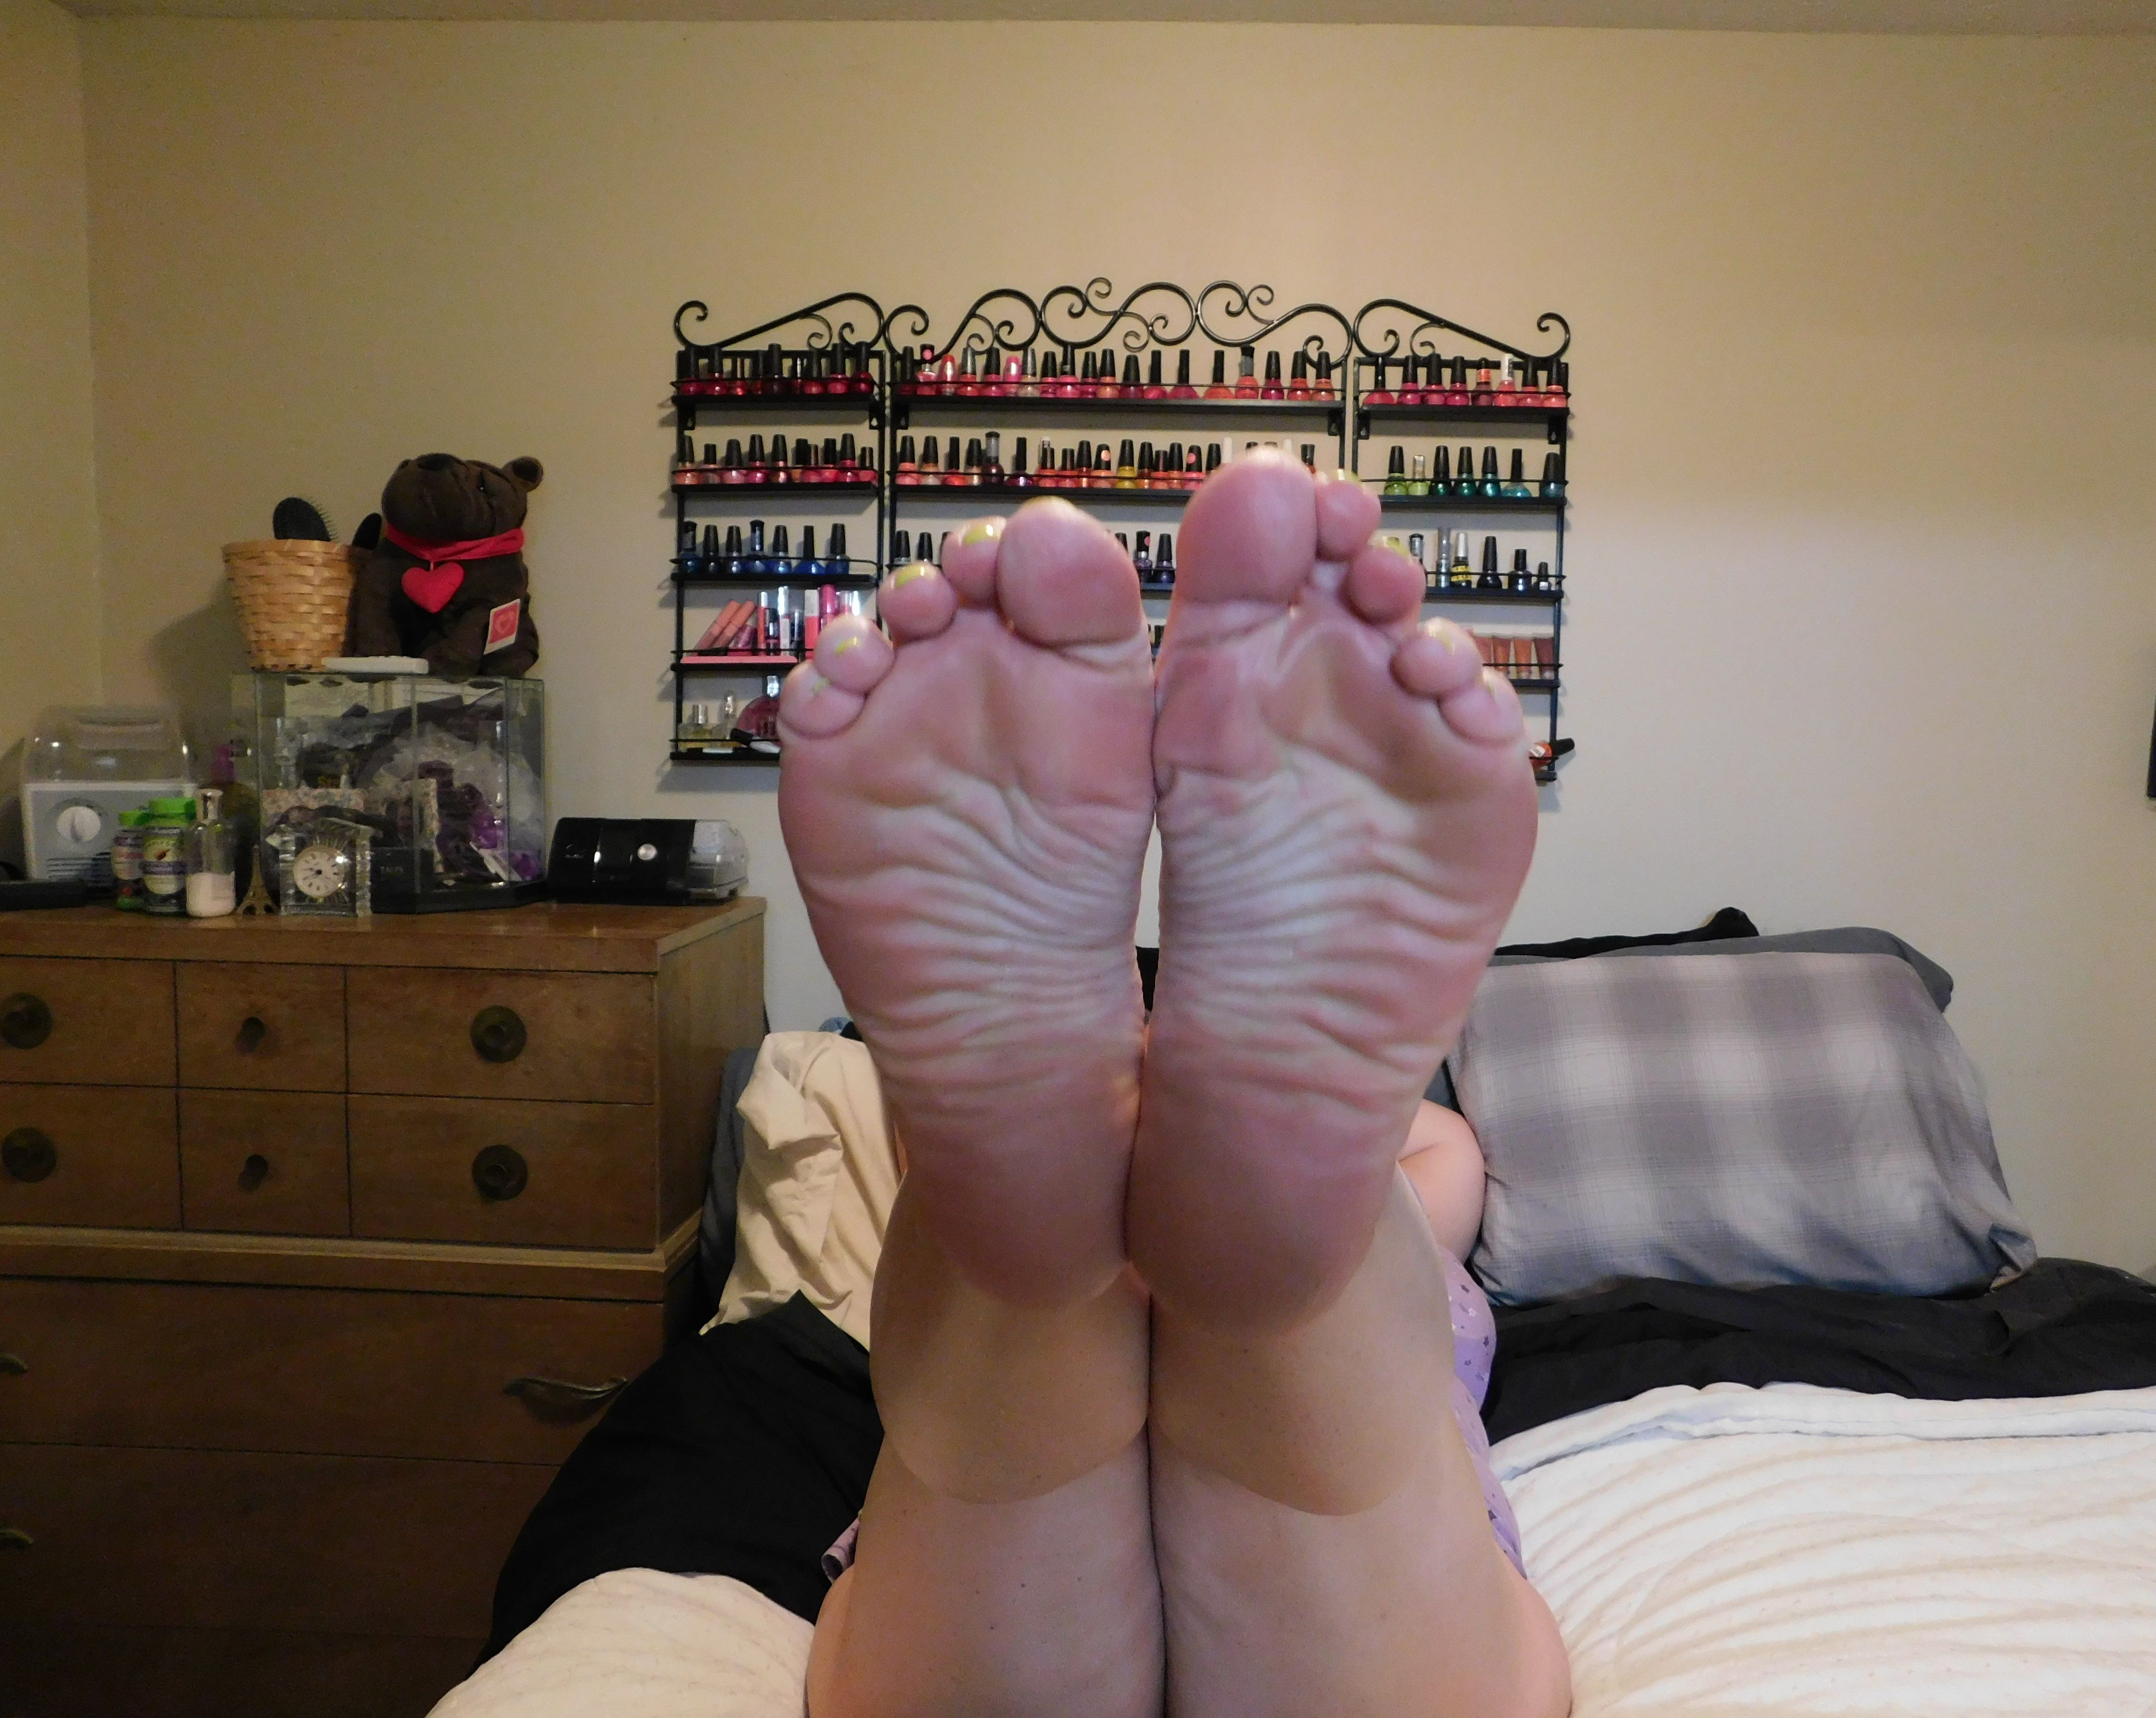 Sexy Latina Feet Tumblr Amazing 2049 best wrinkle soles images on pinterest | kisses, night and